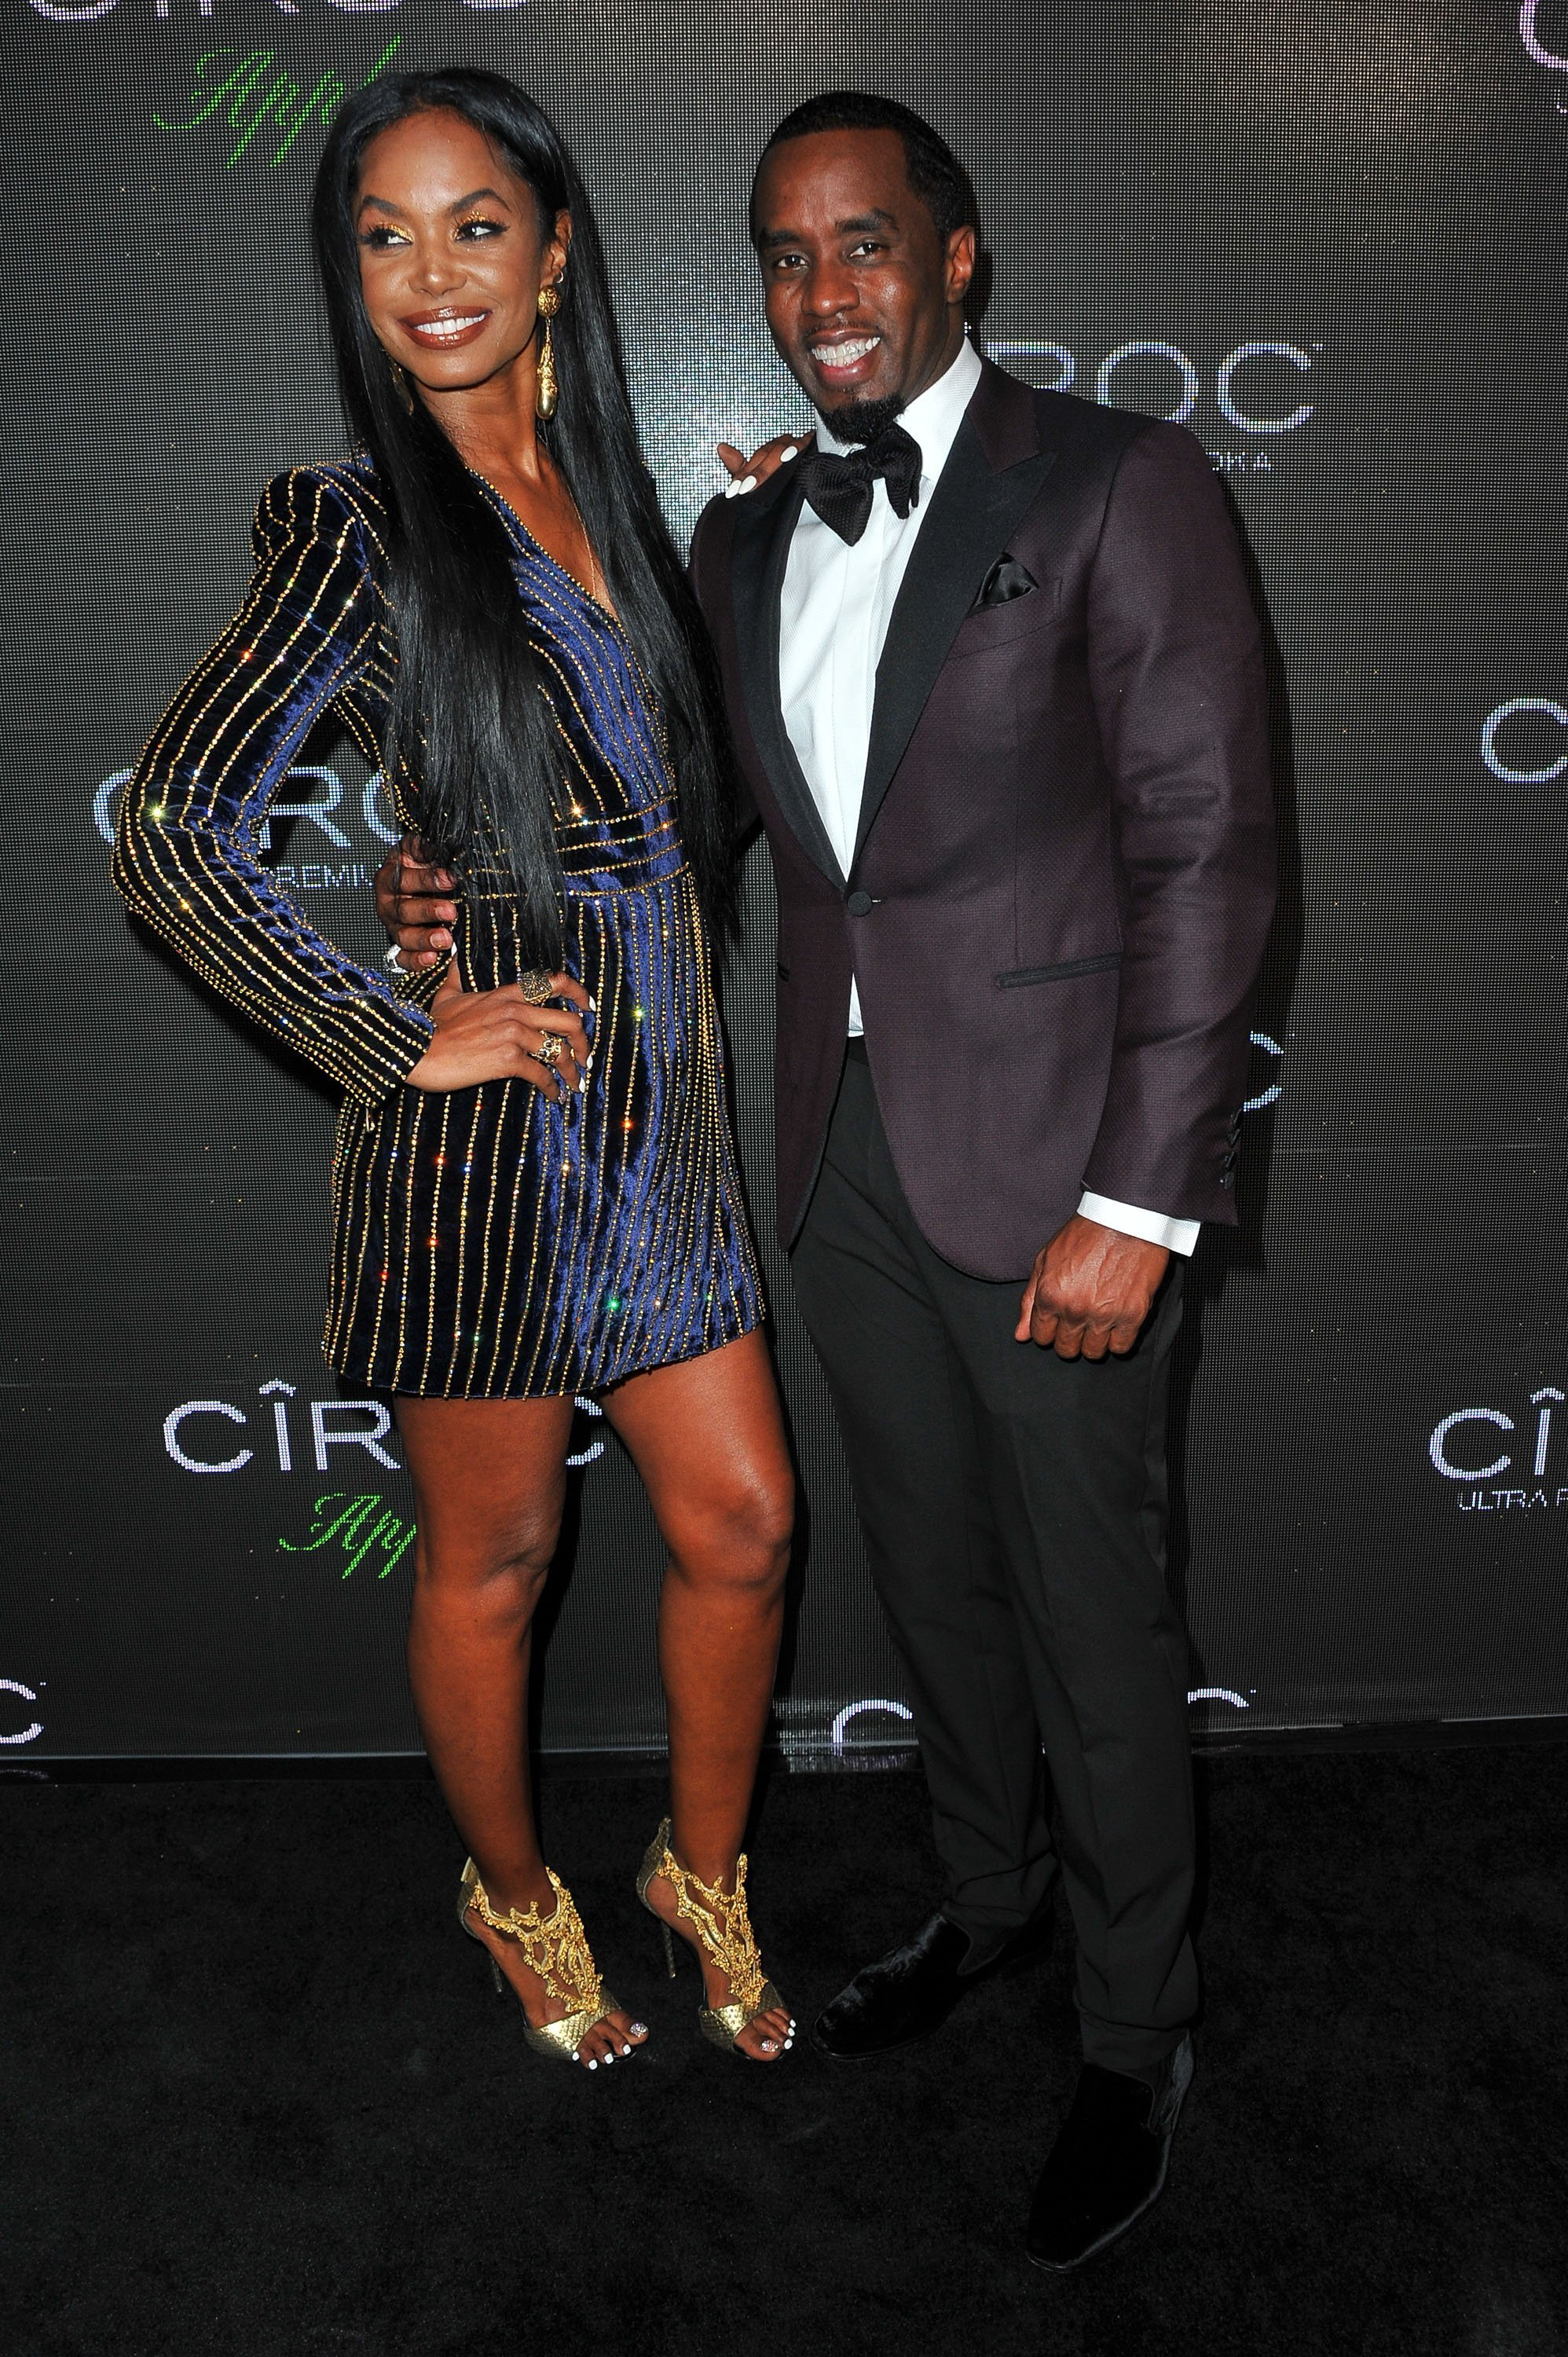 Kim Porter and Diddy during a birthday celebration for the rapper in 2015. | Photo: Getty Images